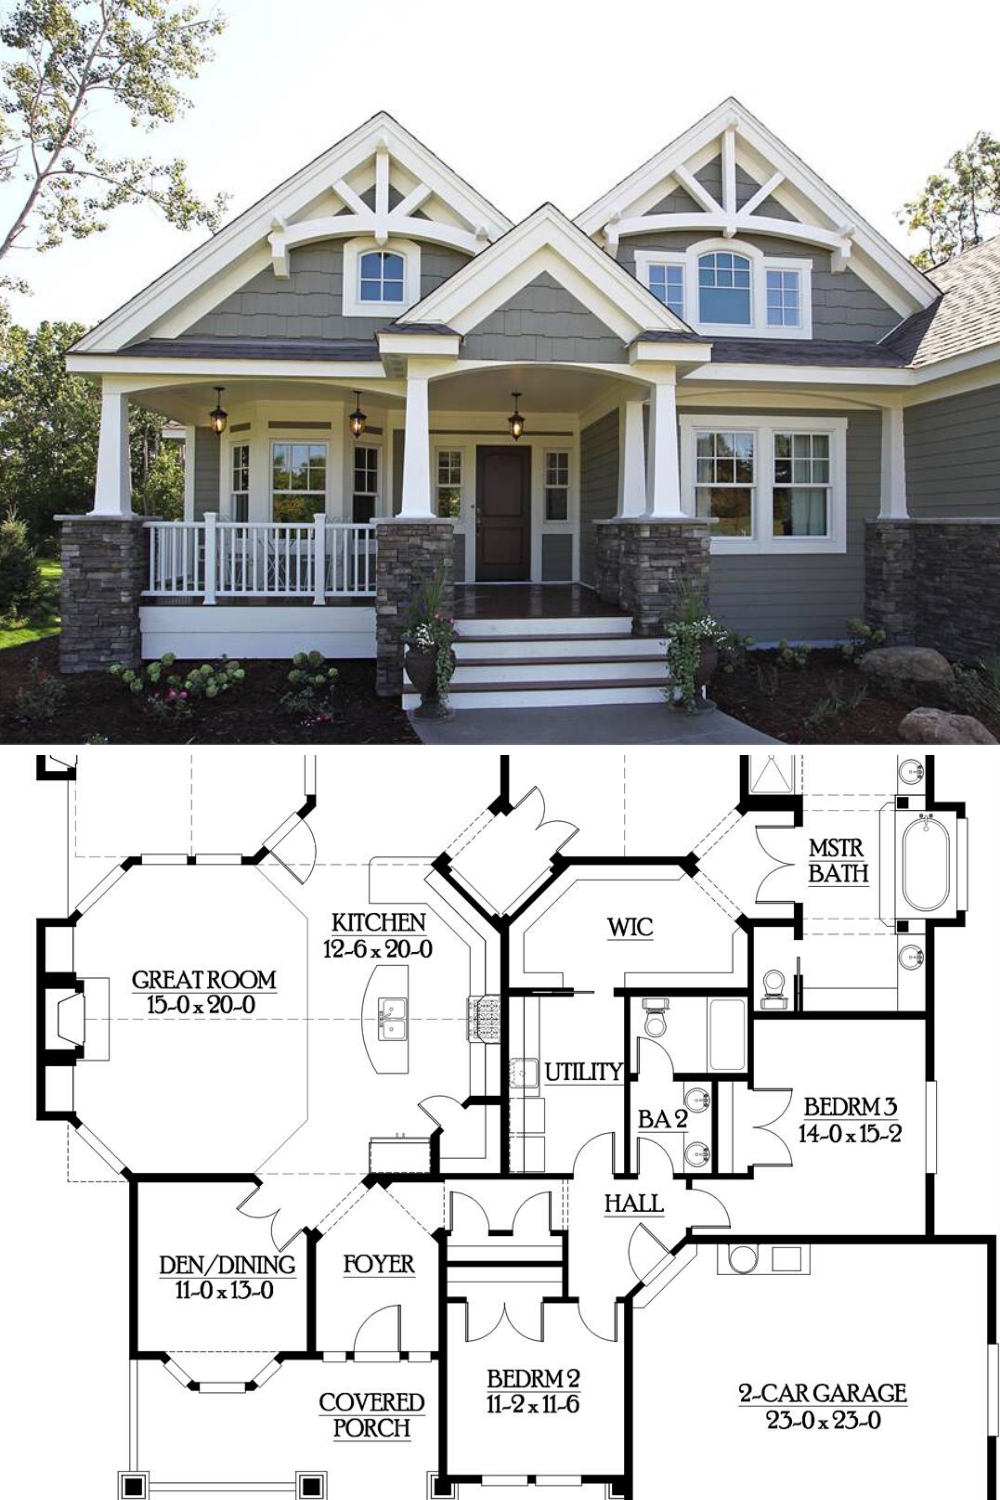 3 Bedroom Single Story Craftsman Style Home Floor Plan In 2020 Craftsman Style House Plans Craftsman House Plans Family House Plans